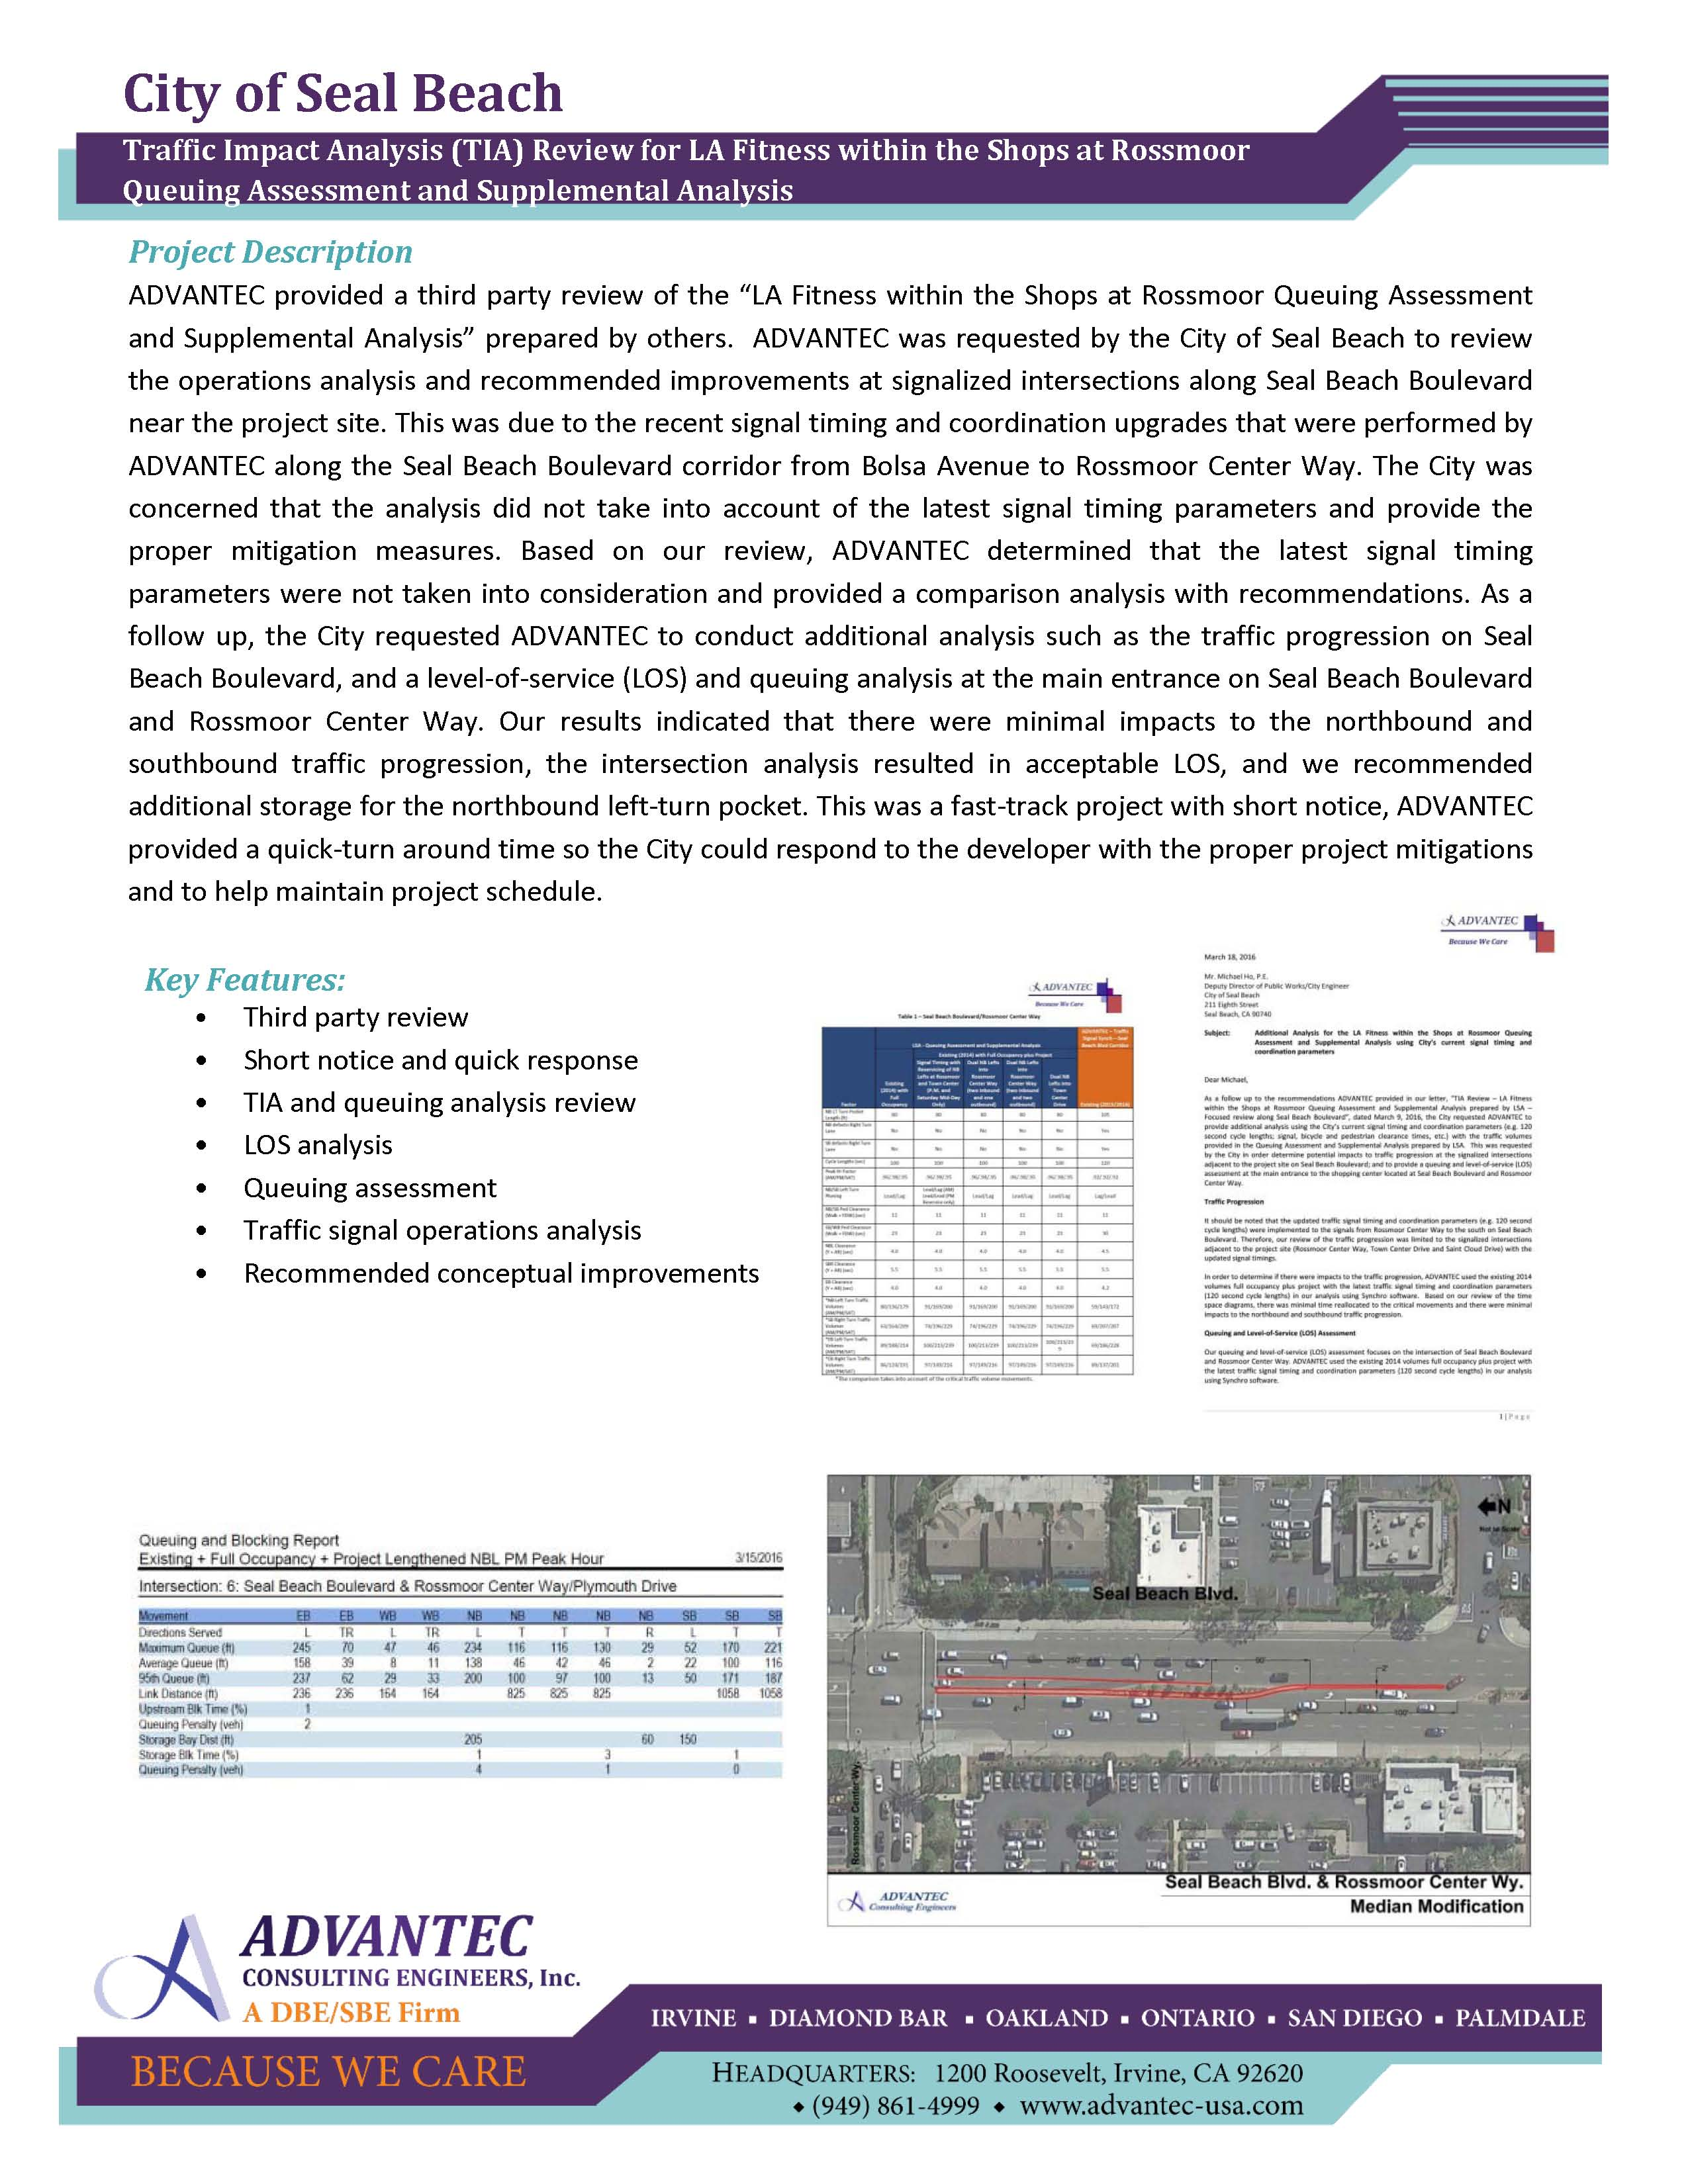 ^WEB-Seal Beach-Traffic Impact Analysis (TIA) Review for LA Fitness within the Shops at Rossmoor Queuing Assessment and Supplemental Analysis